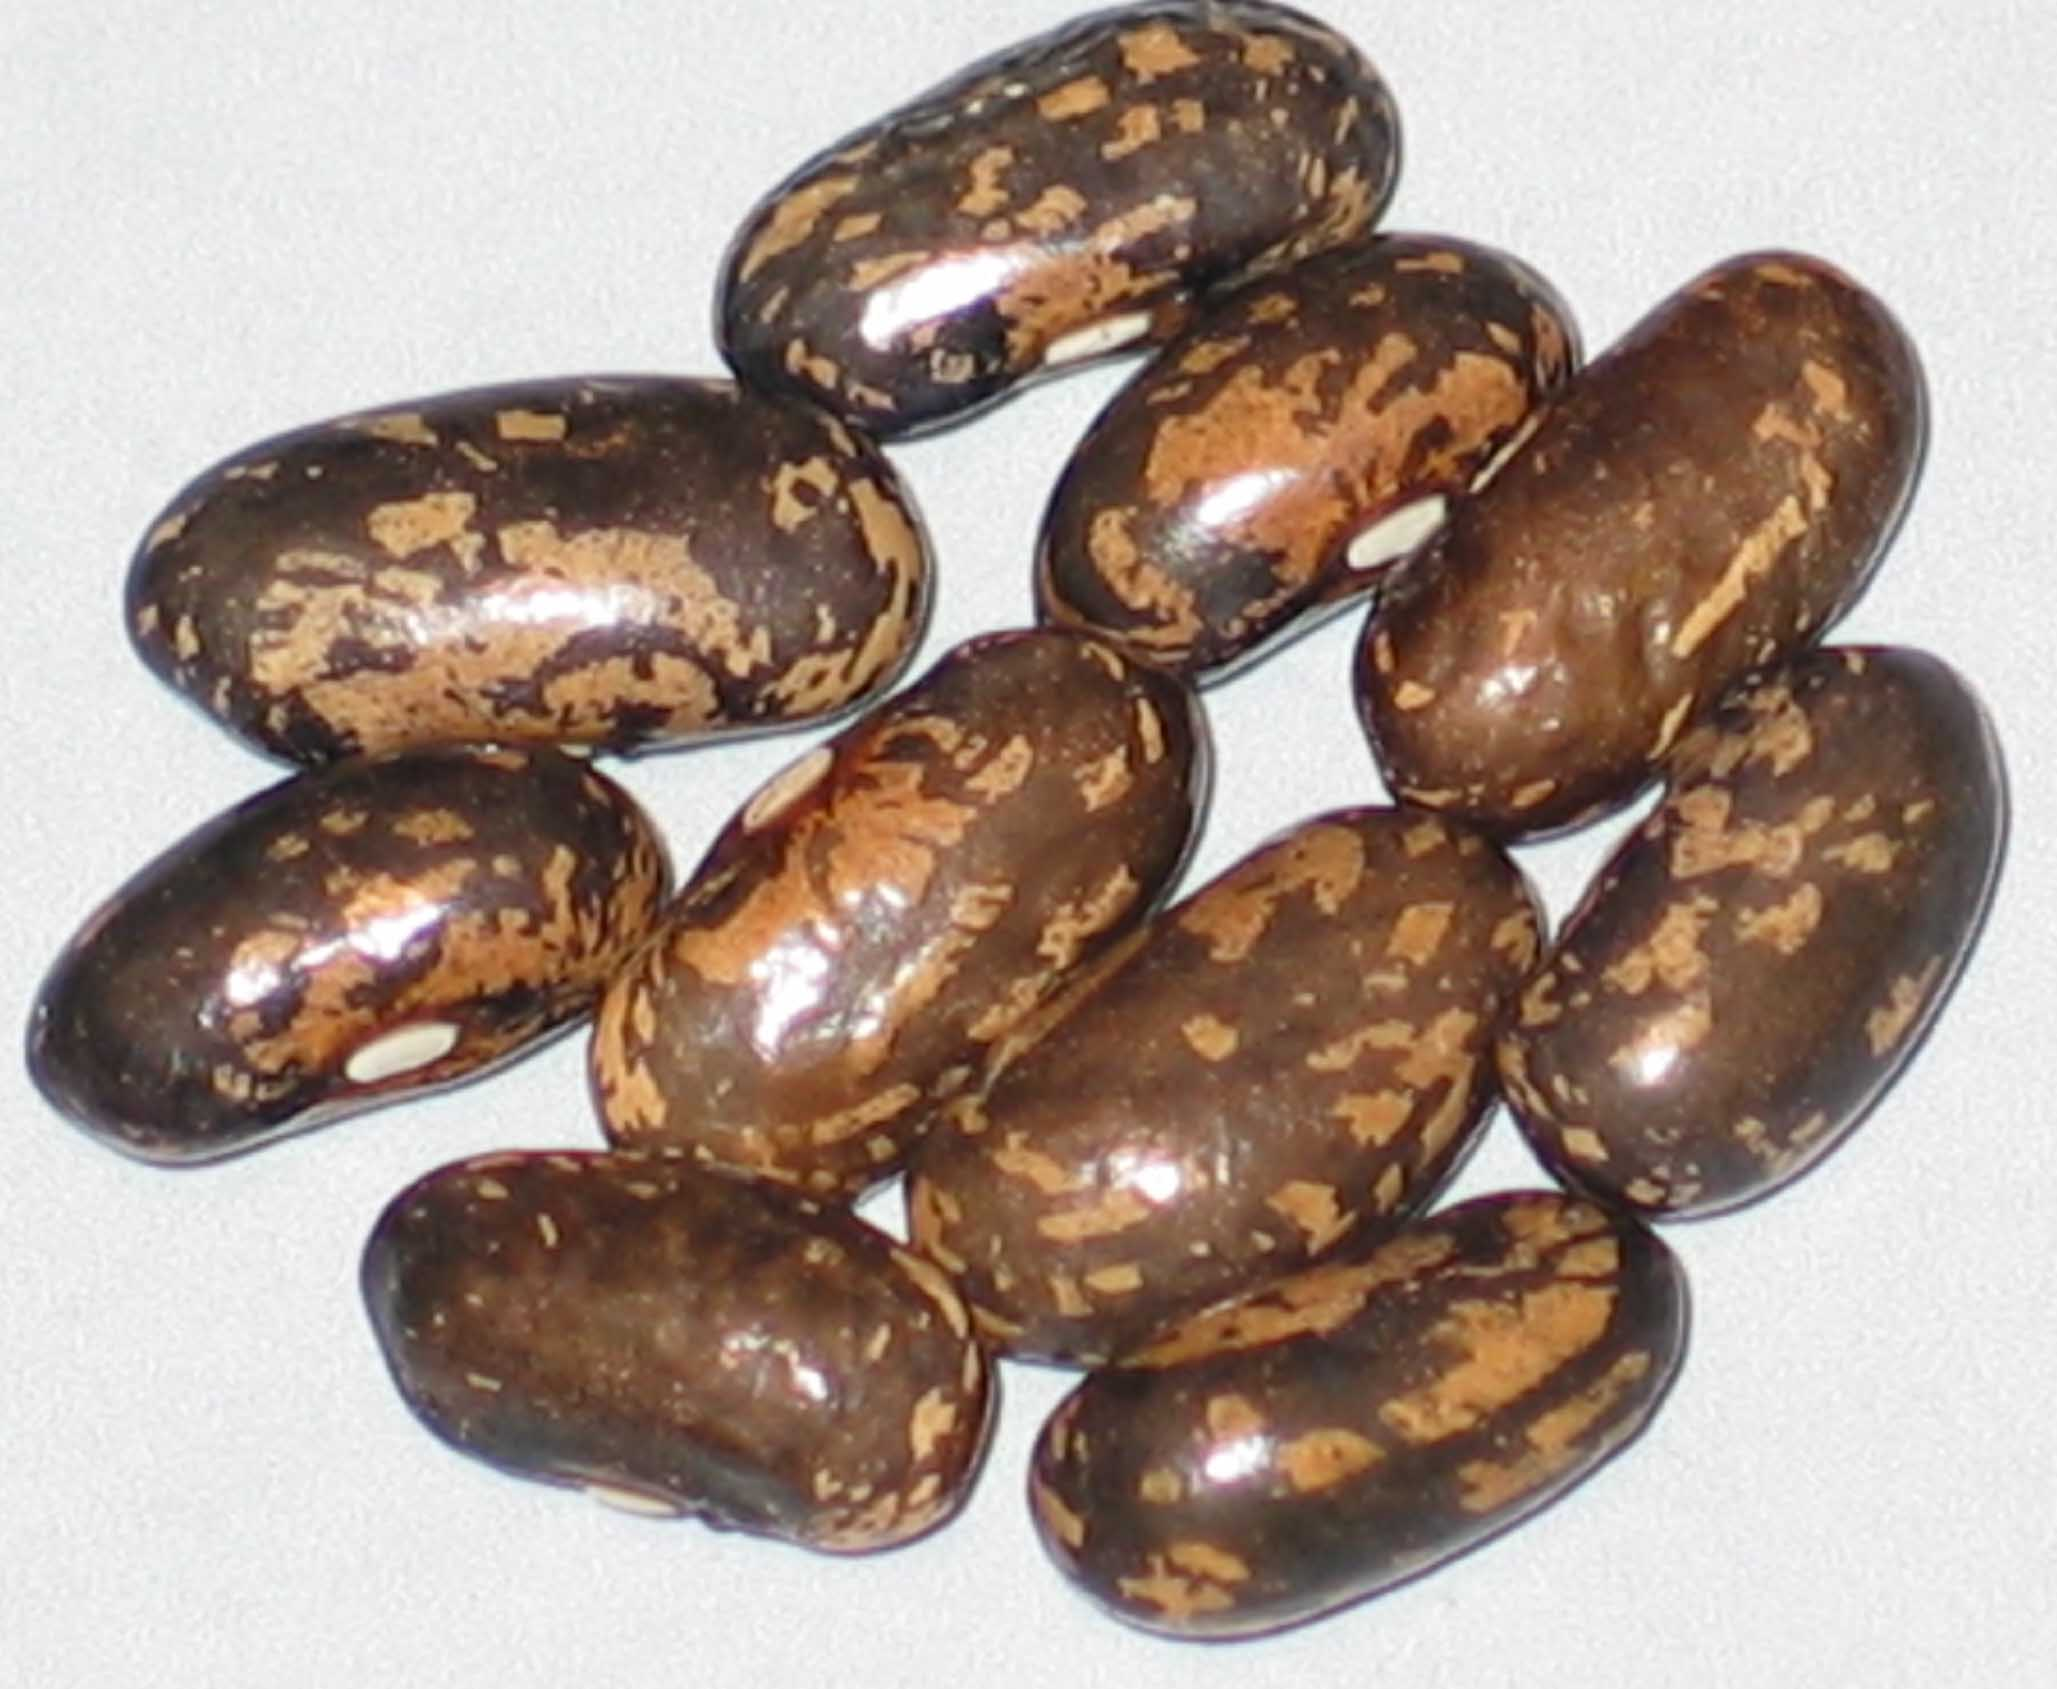 image of Corbett Refugee beans